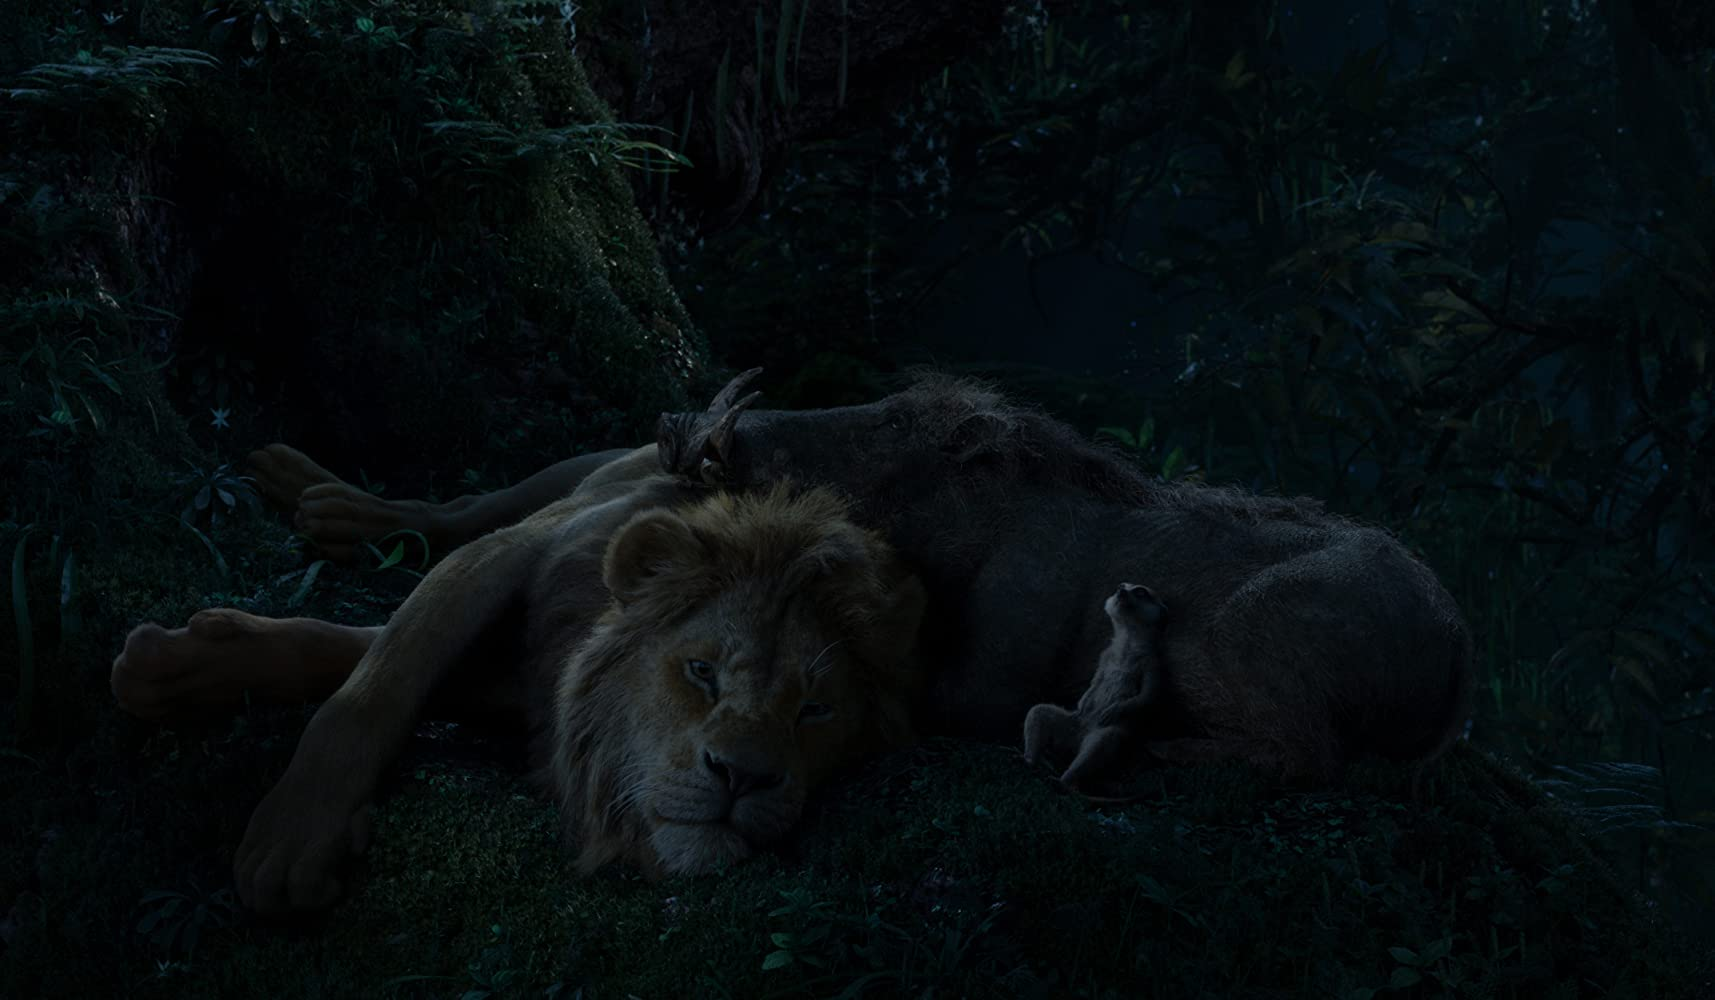 Seth Rogen, Donald Glover, and Billy Eichner in The Lion King (2019)